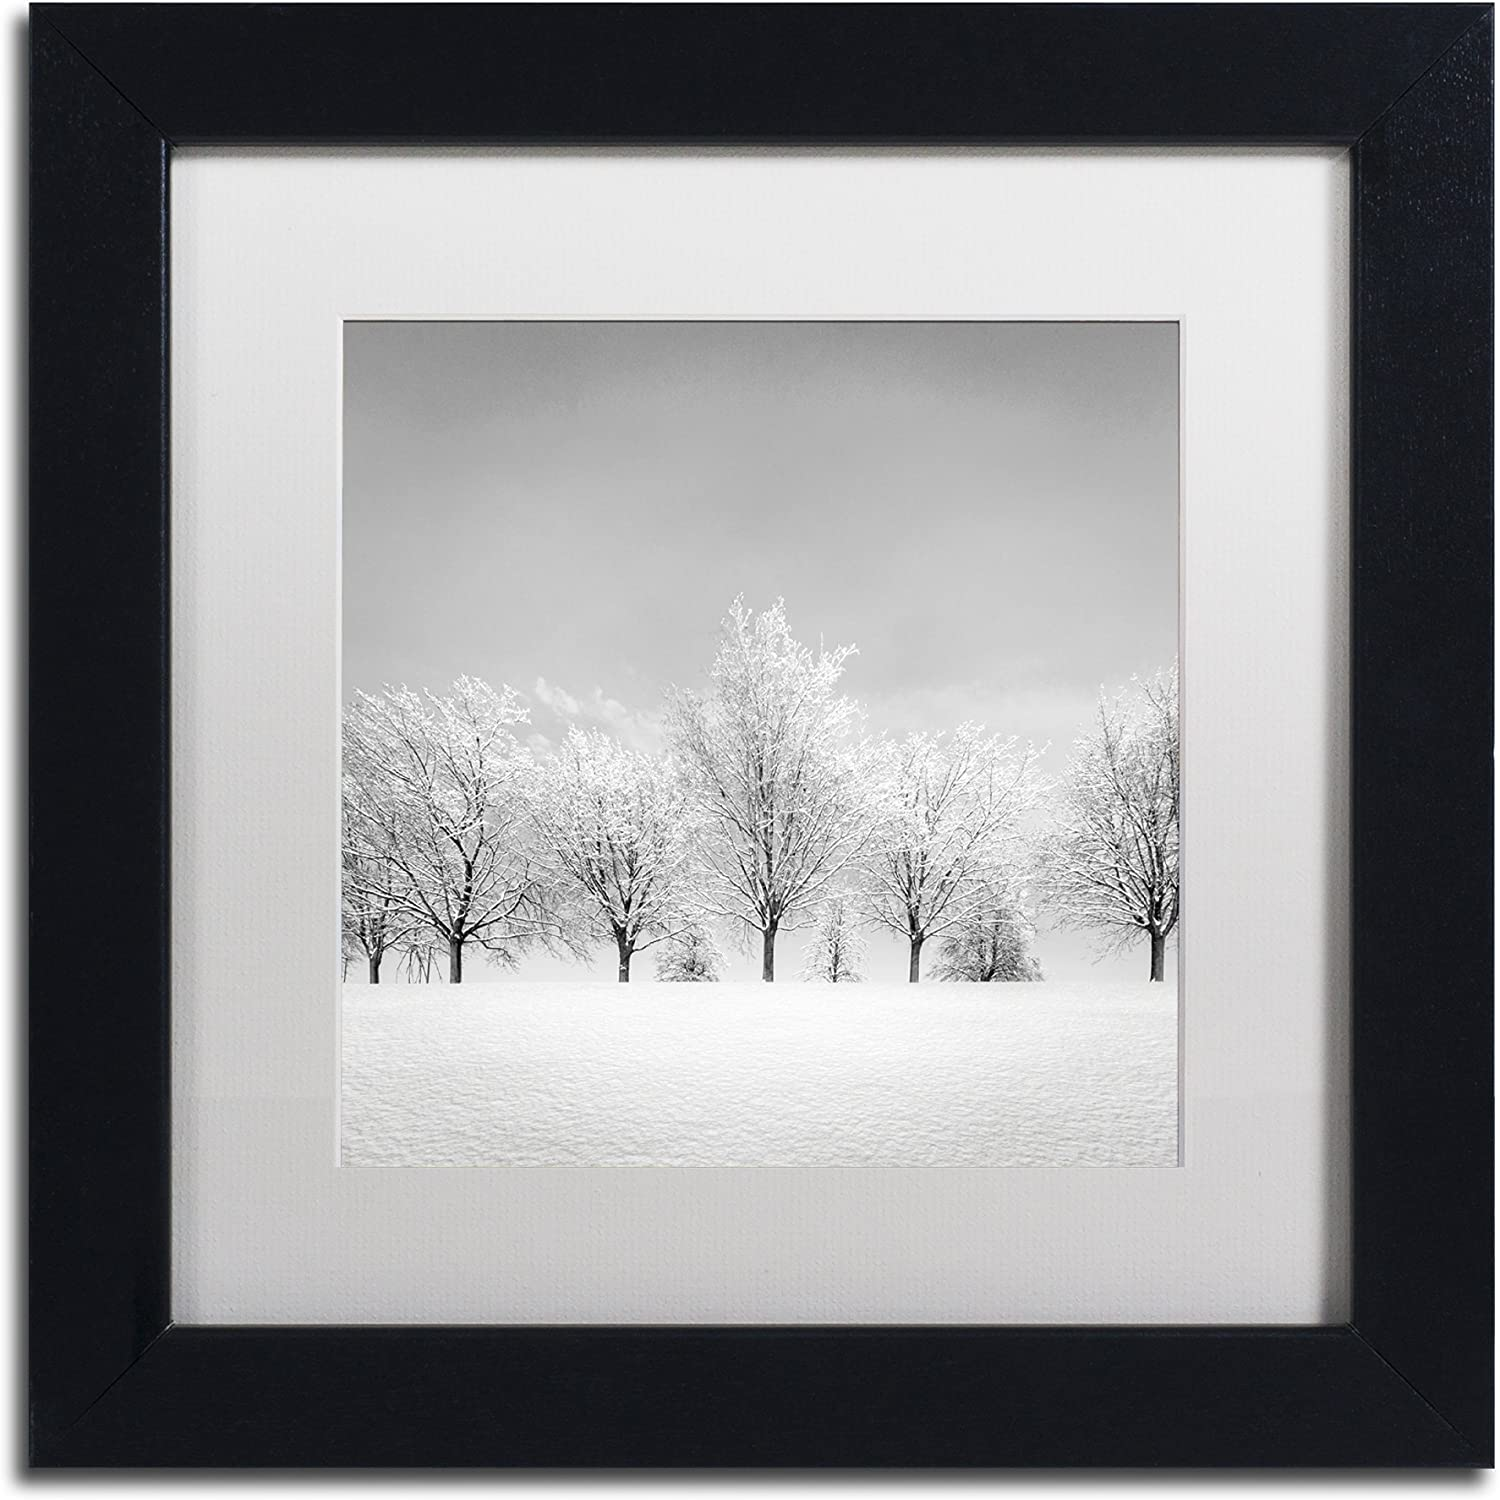 Trademark Fine Art Ice Storm by Dave MacVicar Frame, 11 by 11Inch, White Matte